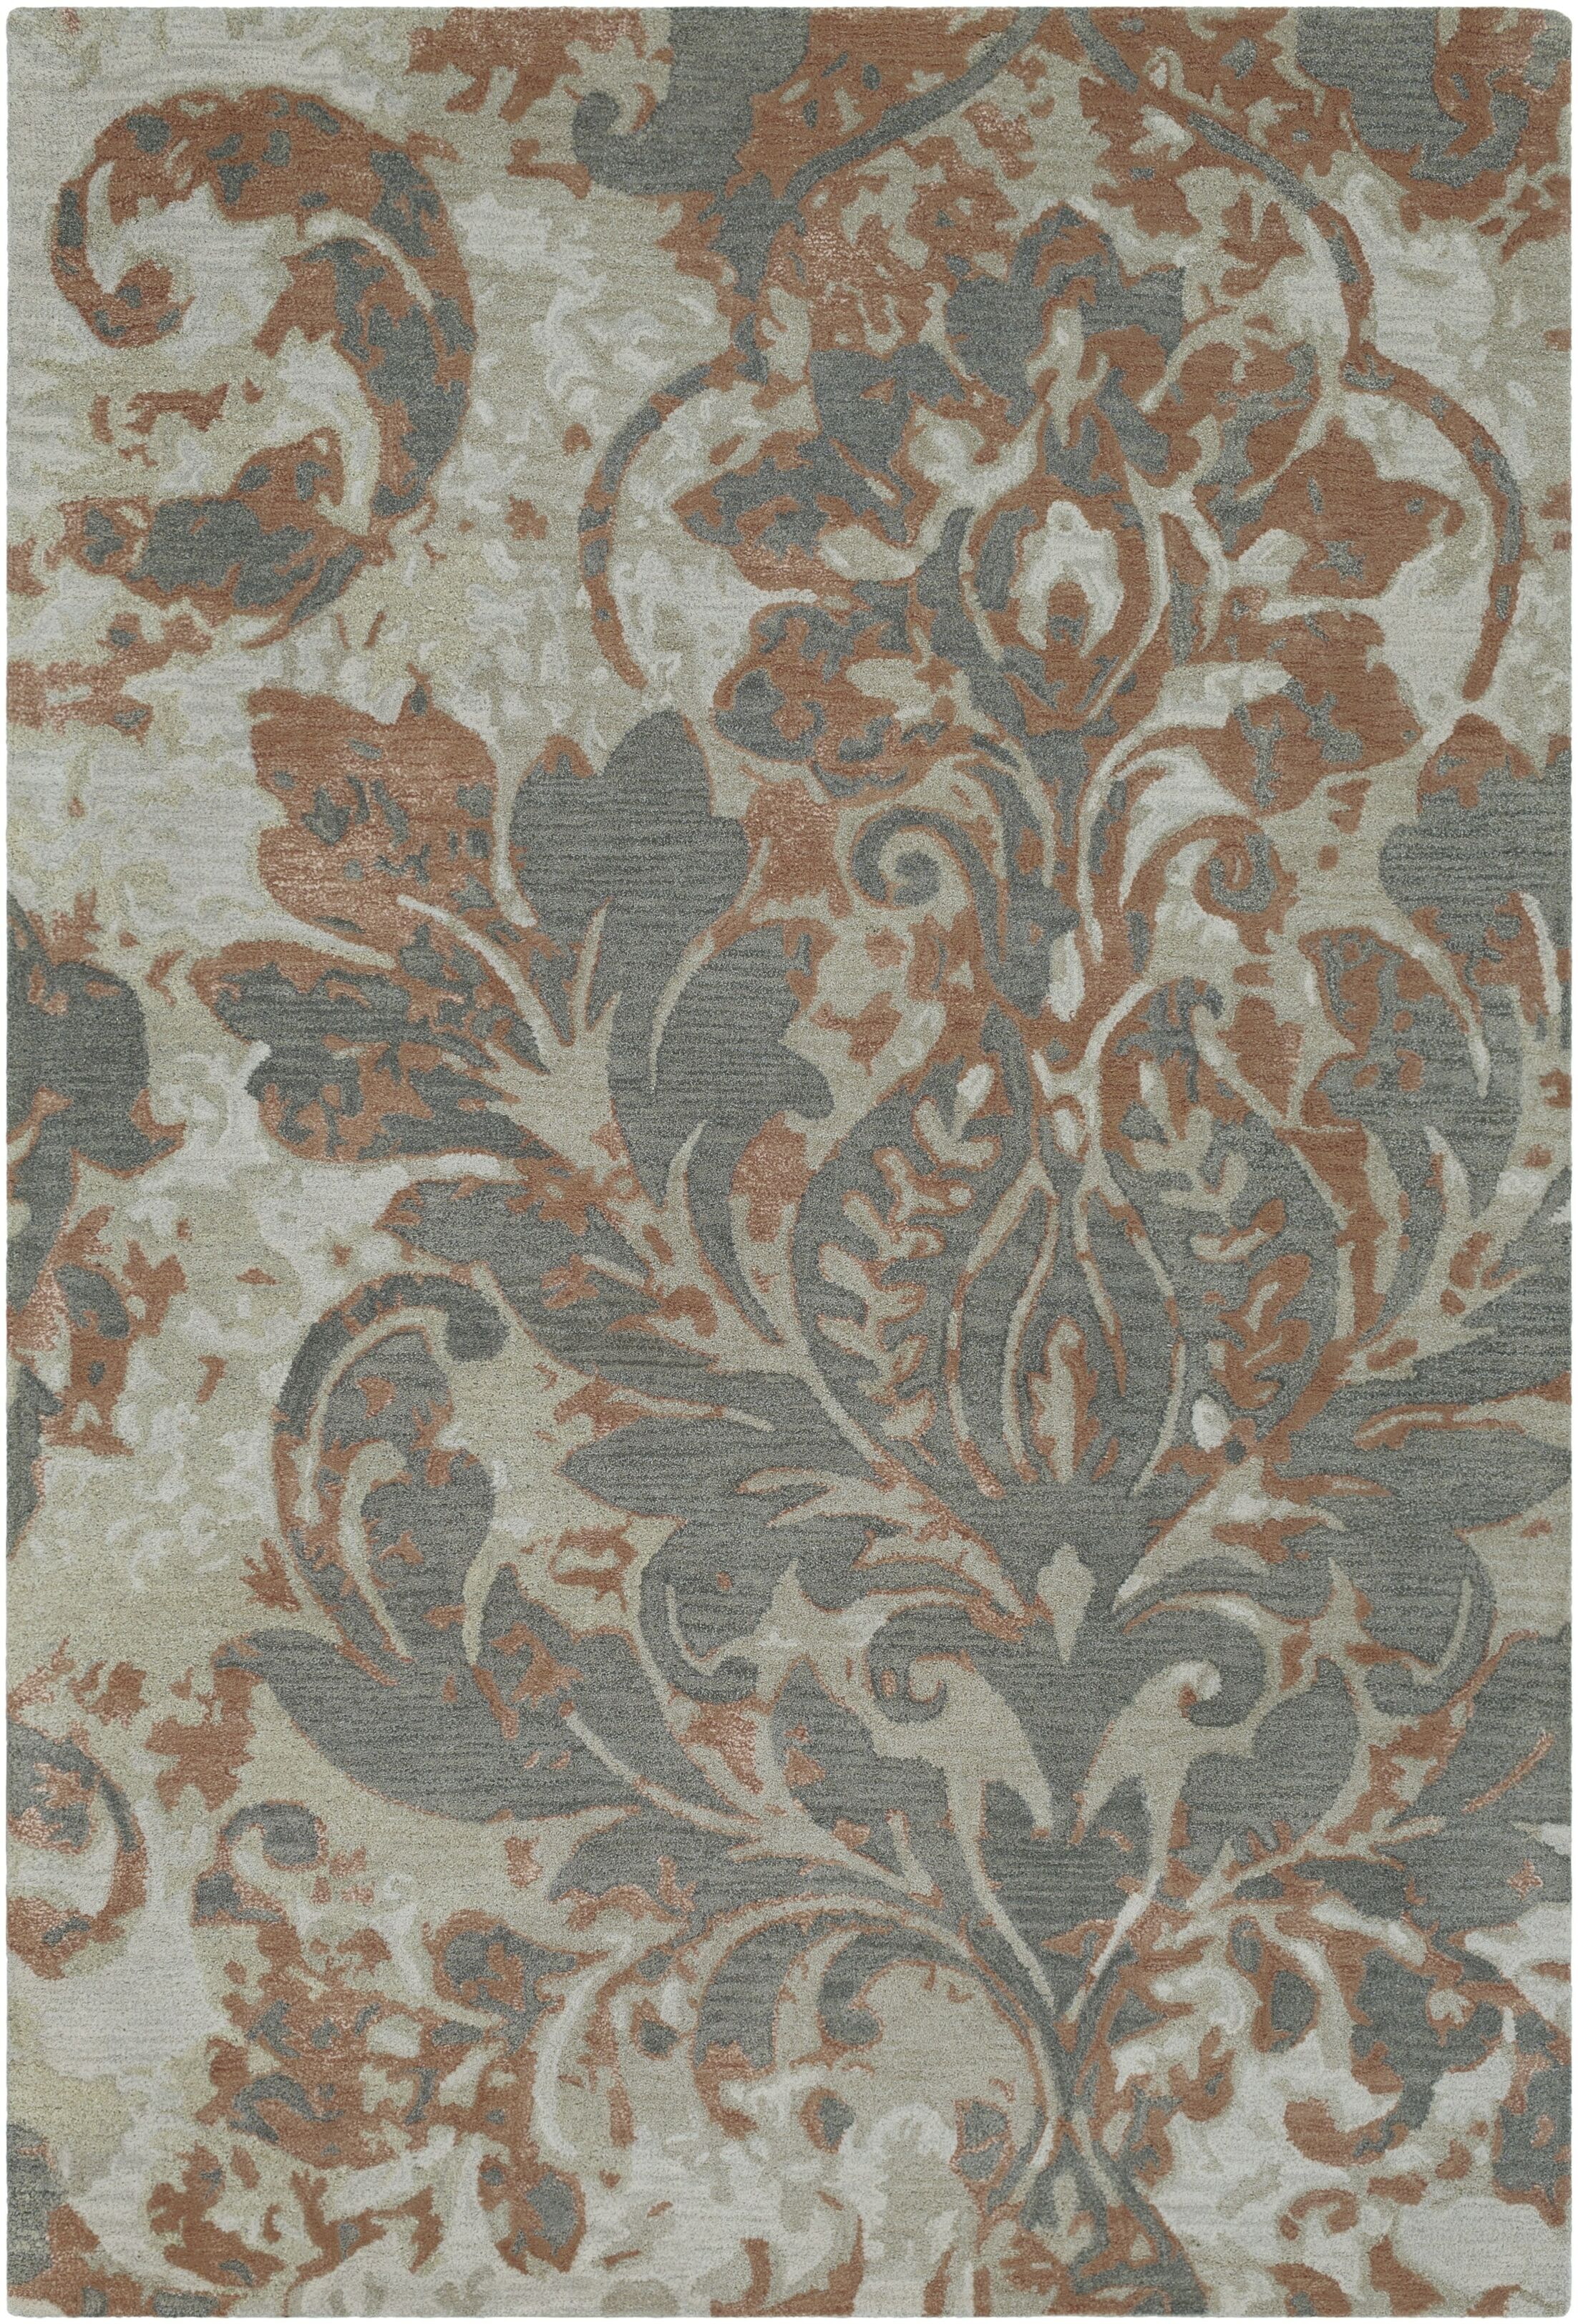 Terry Hand-Tufted Camel/Charcoal Area Rug Rug Size: Rectangle 3'3